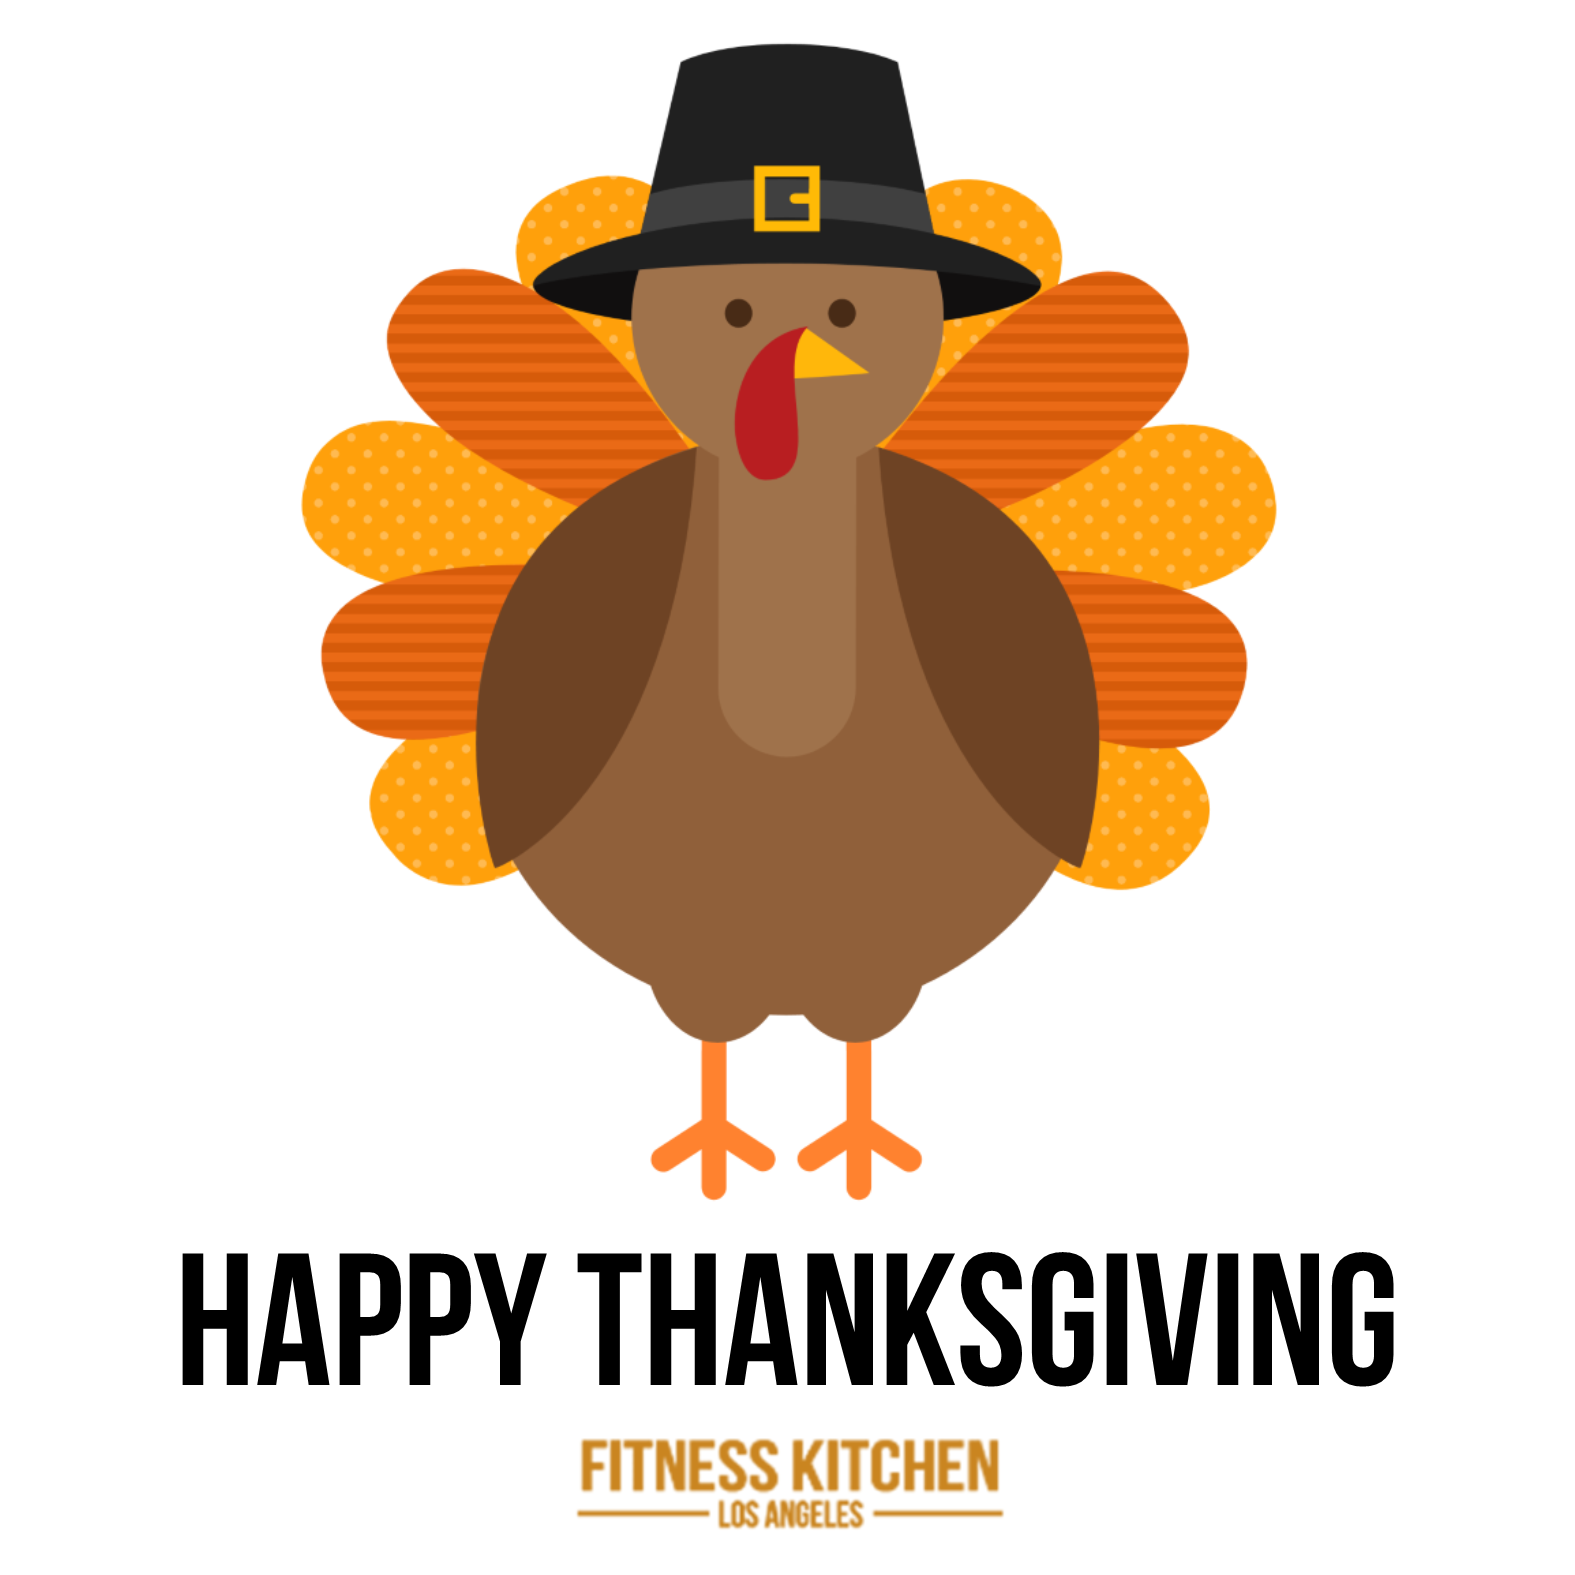 From Our Fitness Kitchen La Family We Want To Wish You A Healthy Happy Thanksgiving Gobble Gobble Thanksgiving Holidays Eathealthy Logotip